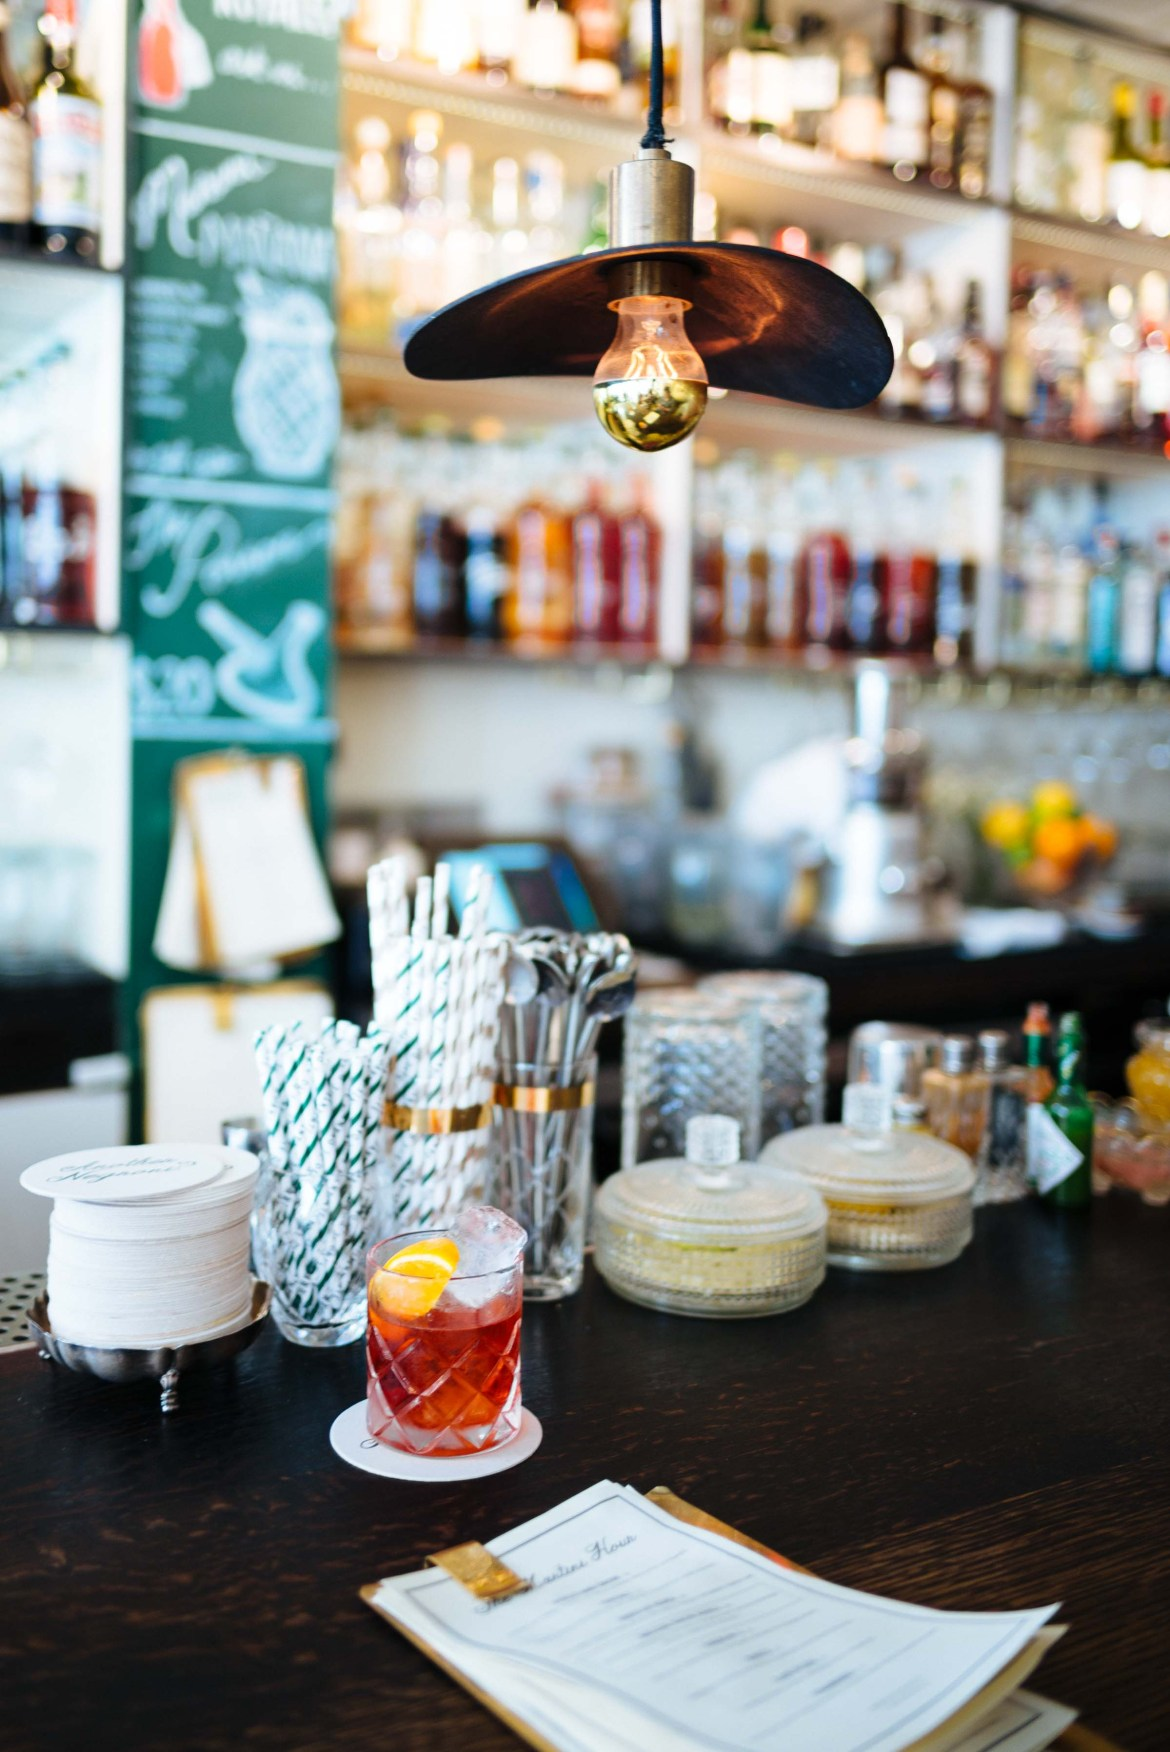 Negroni at Dante in New York City - historic greenwich village bar photo by Sarah Stanfield of The Taste Edit